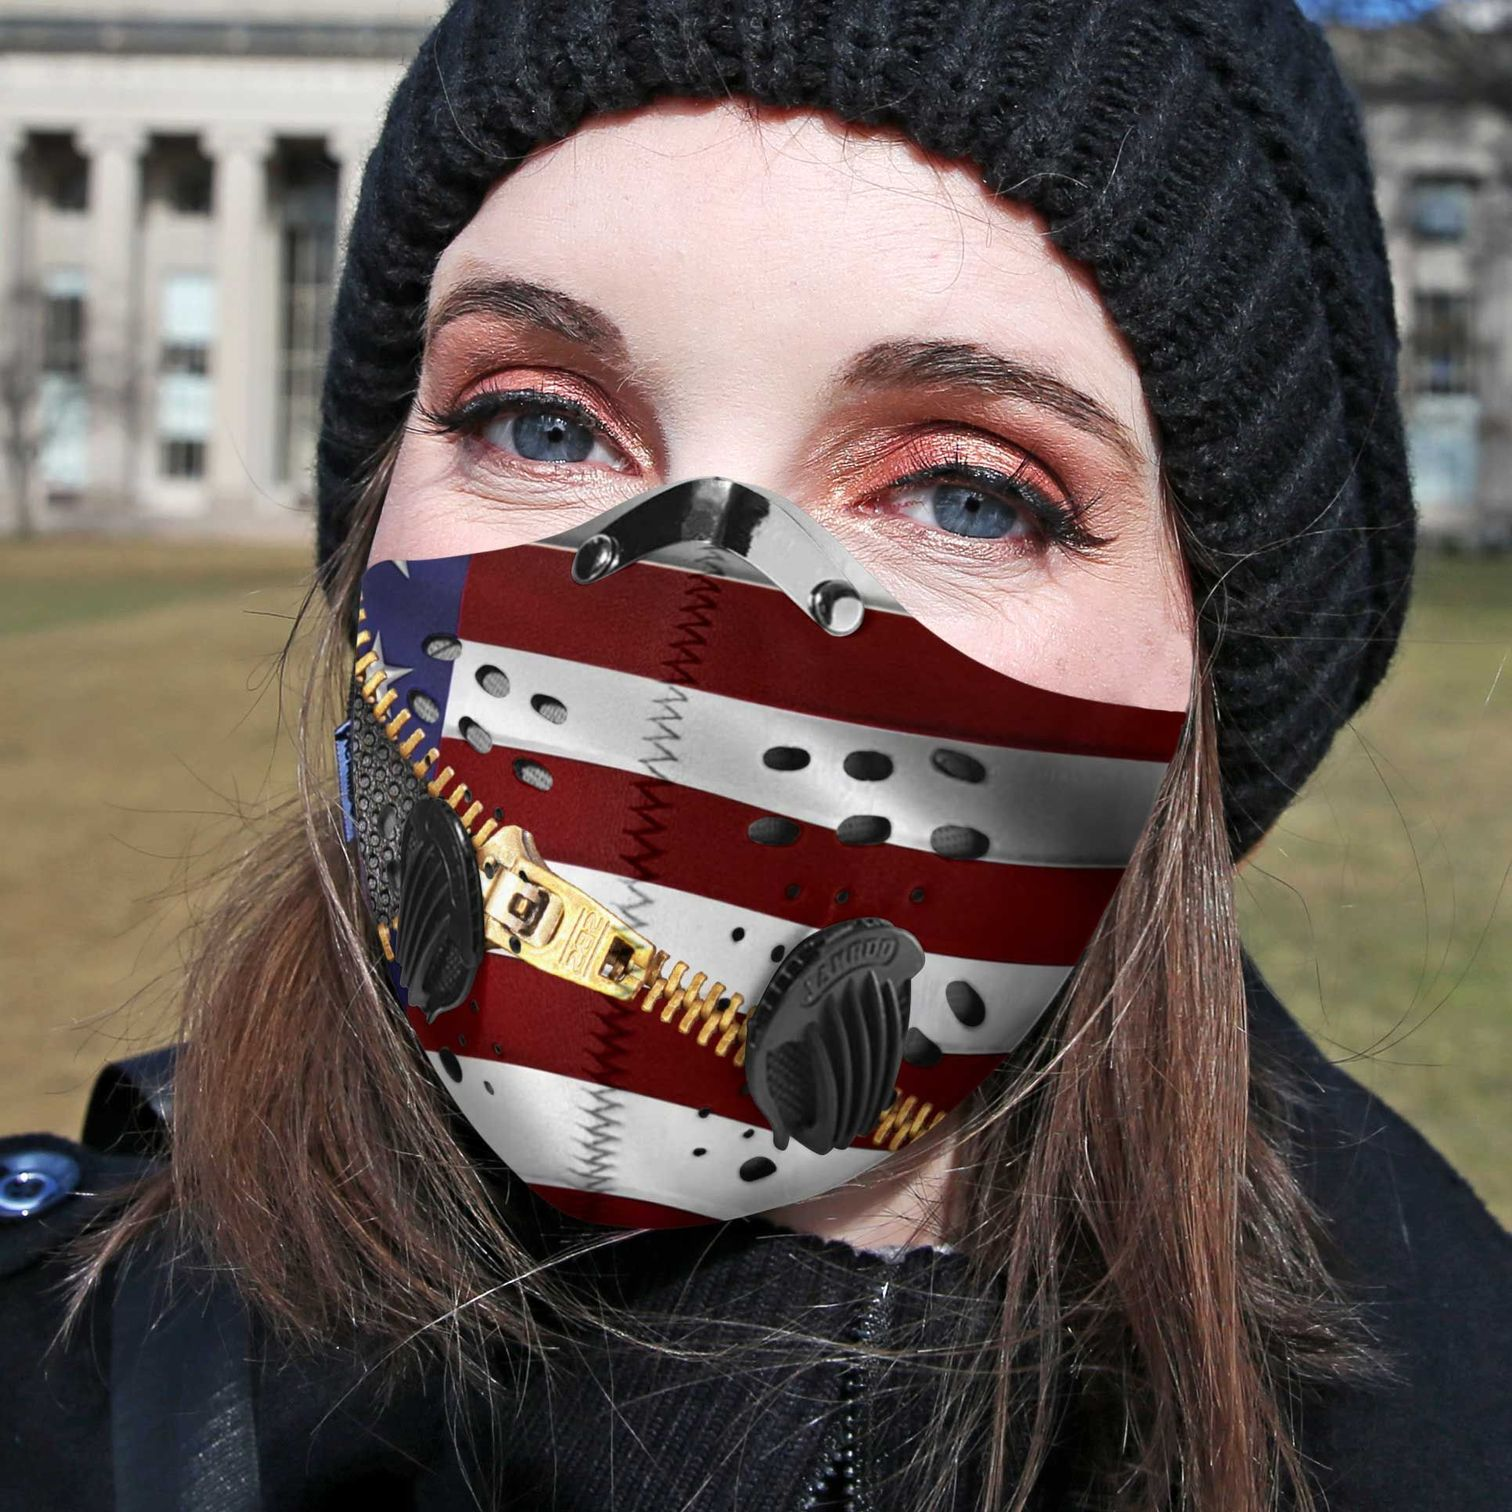 Hairstylist hair hustle american flag carbon pm 2,5 face mask 3